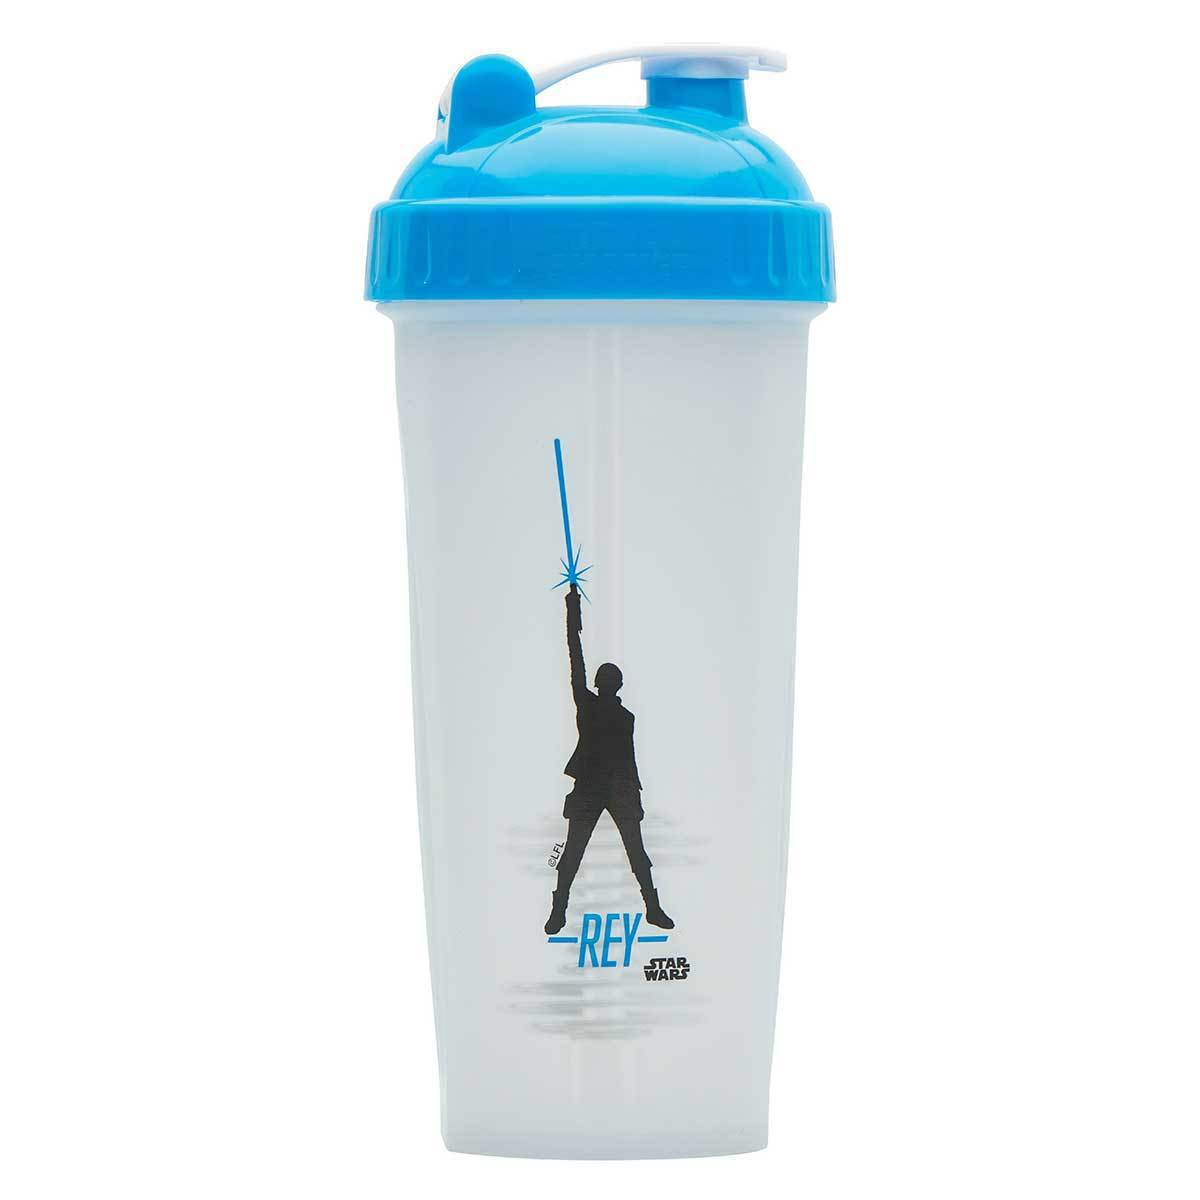 Star Wars Last Jedi Rey Shaker Bottle 28oz Fitness Accessories and Apparel PerfectShaker  (1059339501611)